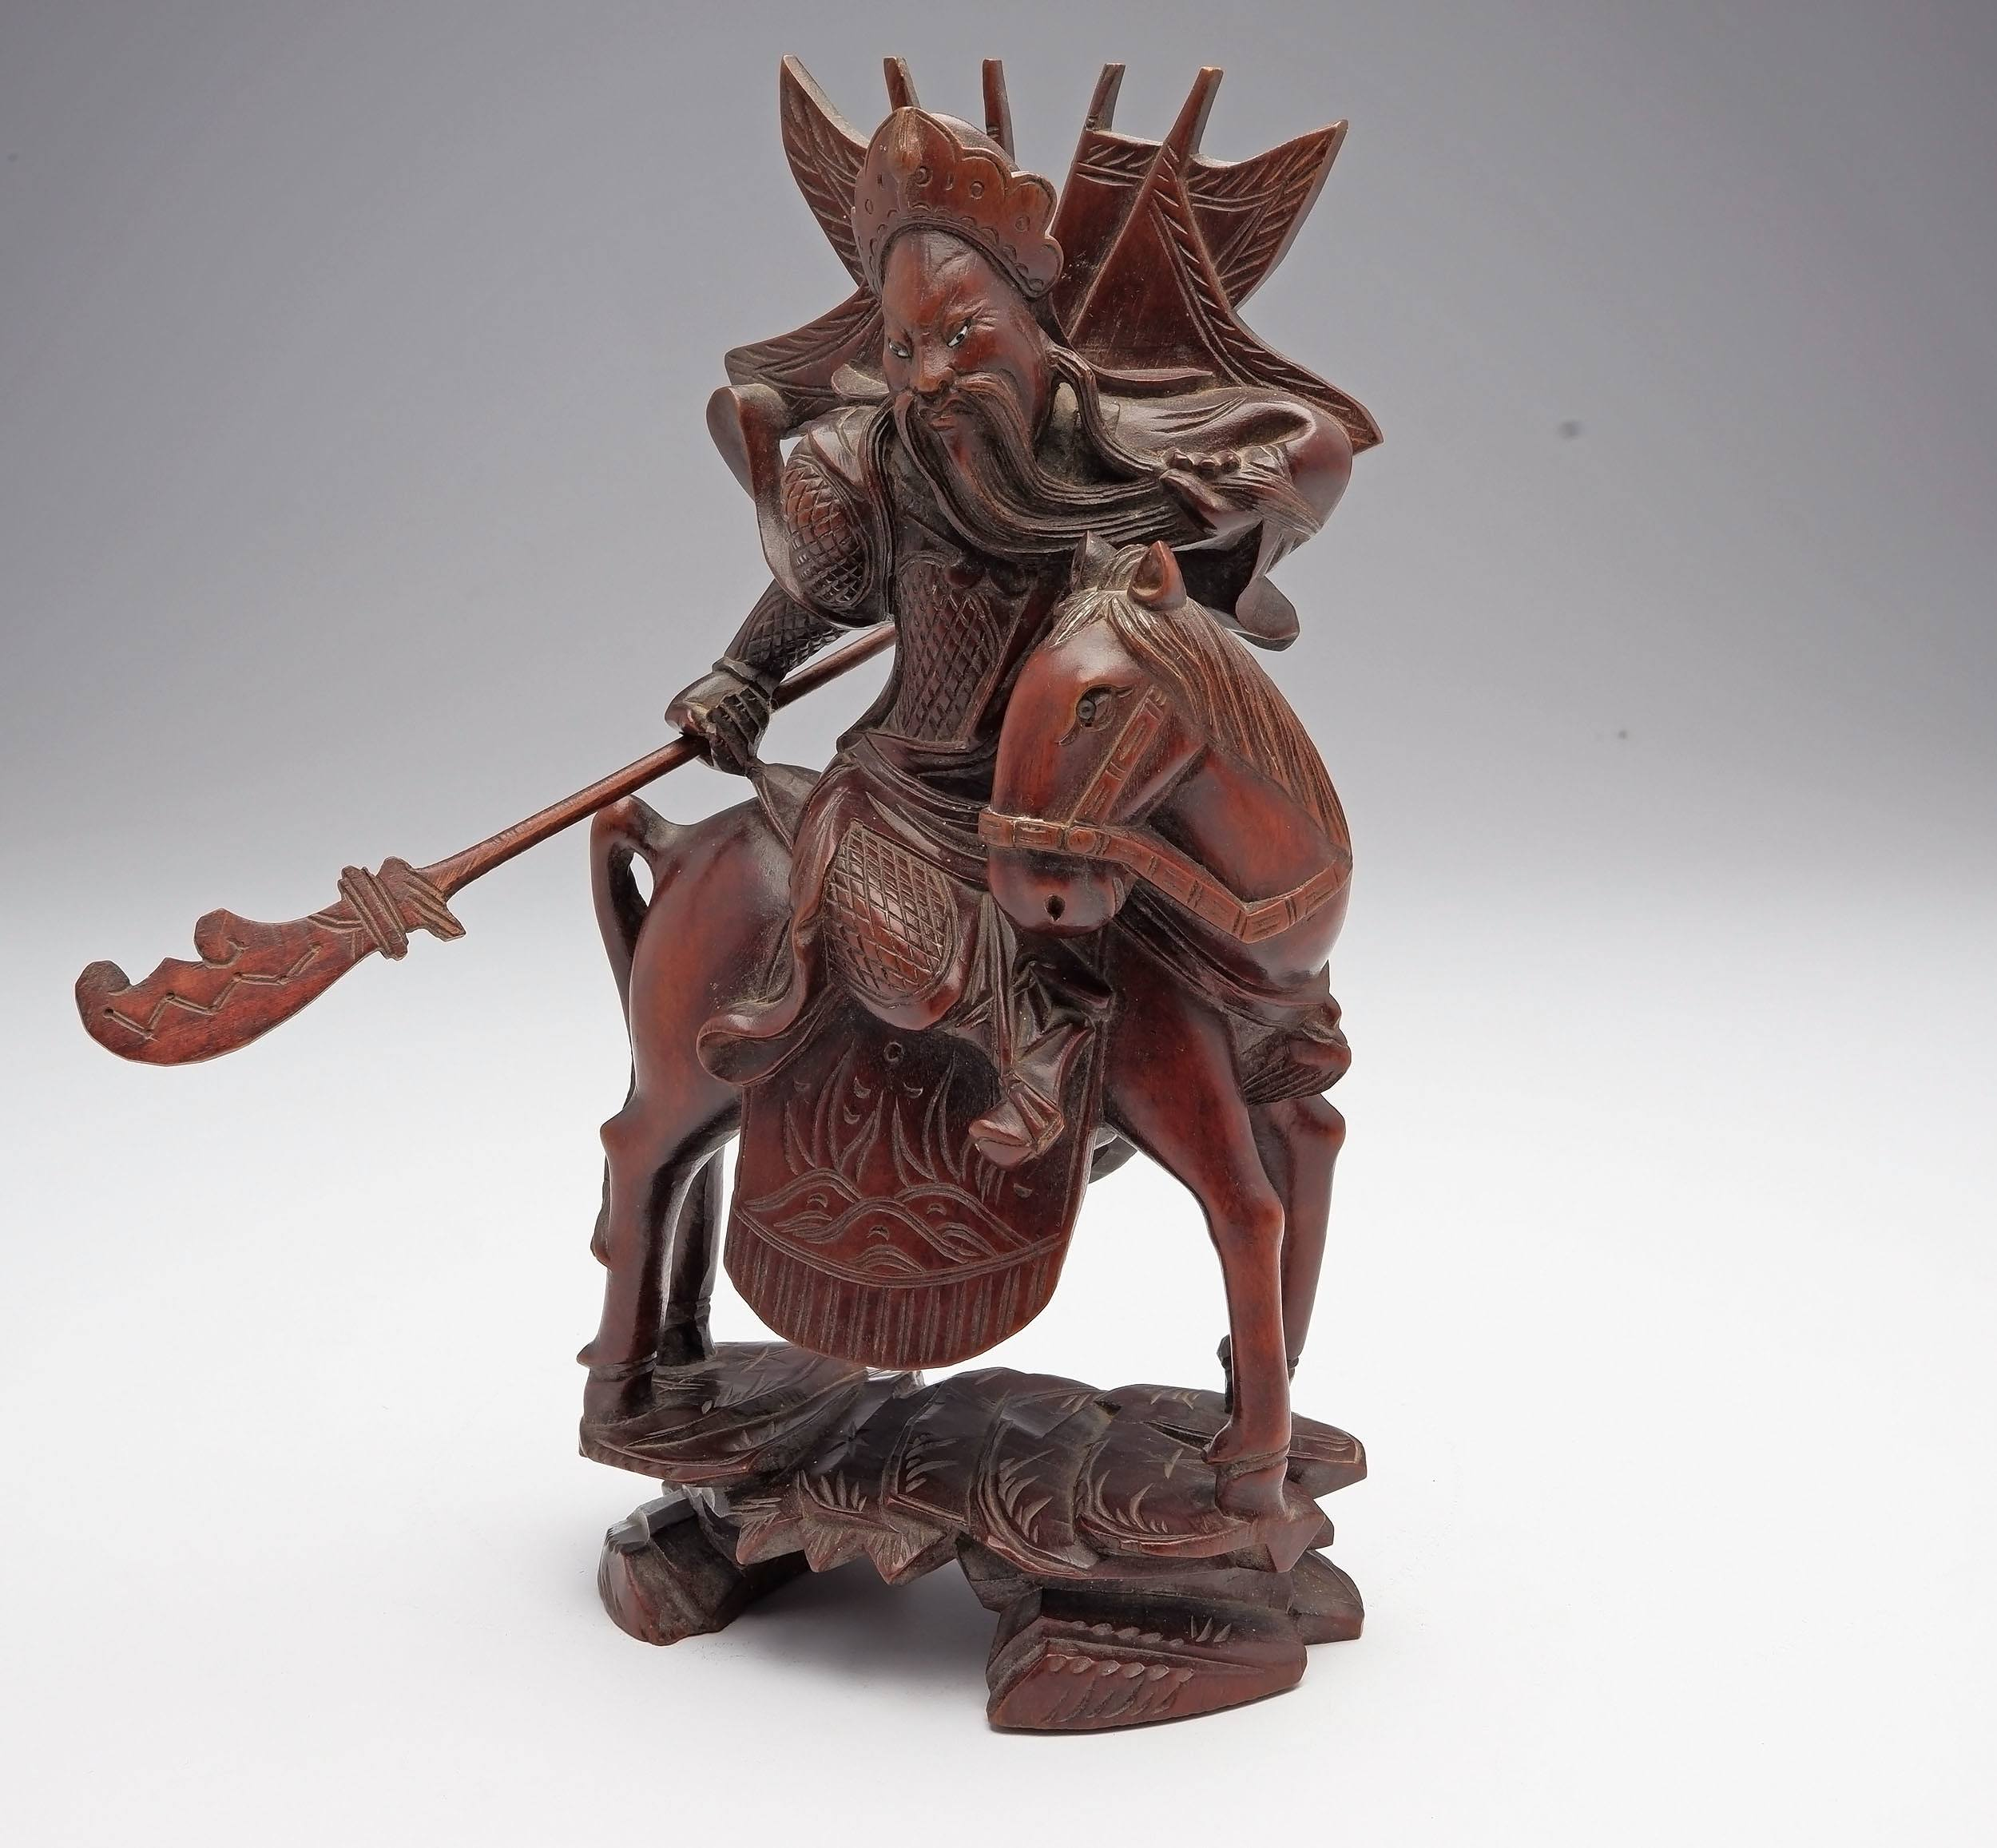 'Chinese Carved Hardwood Model of A Warrior, Early to Mid 20th Century'